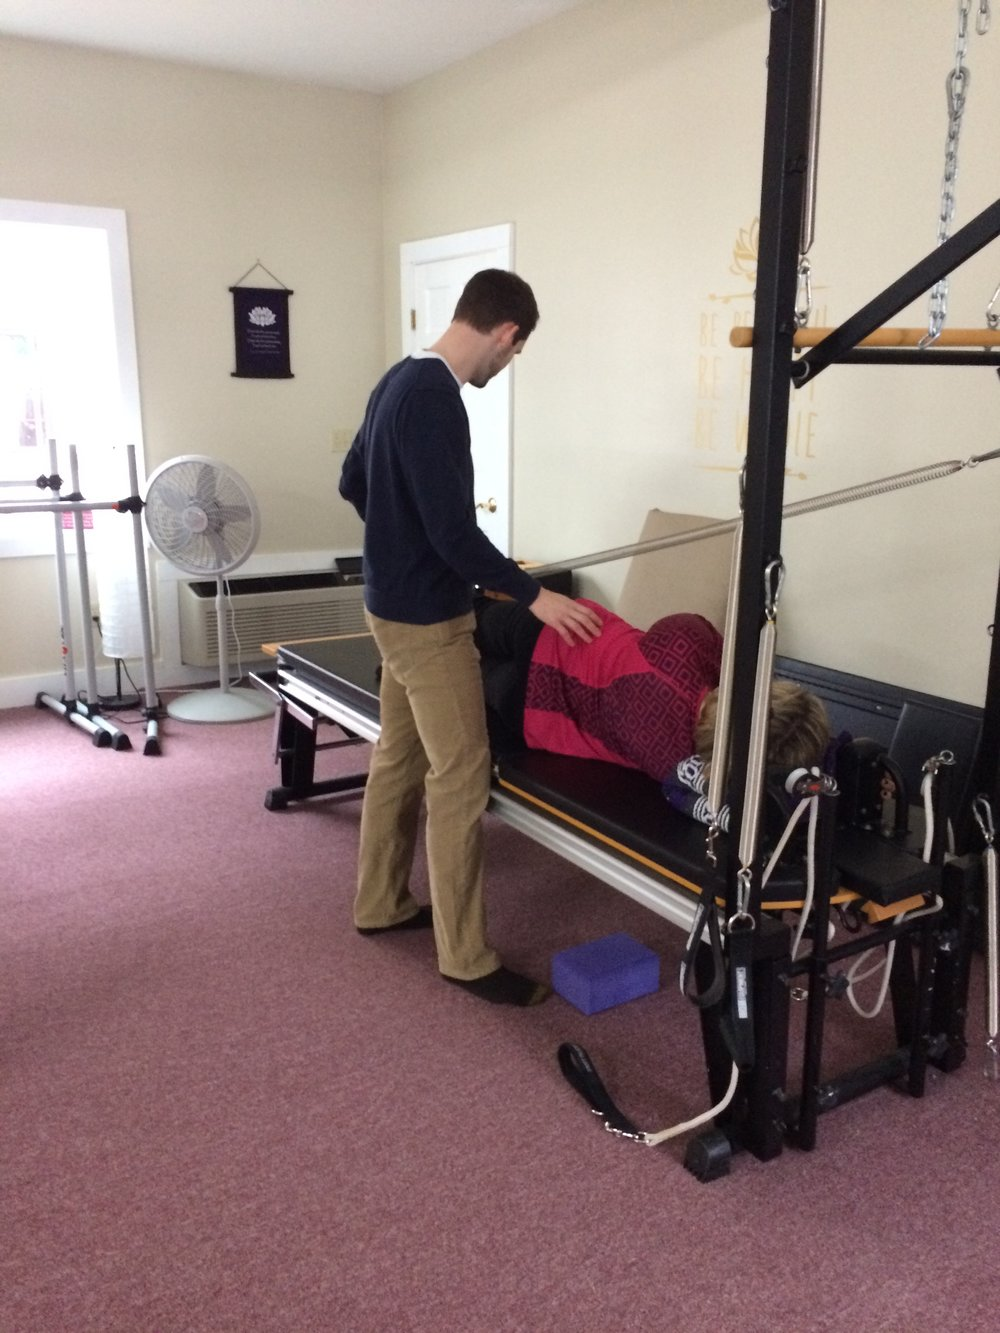 Dr. Kyle Coffey is an expert physical therapist in Amherst, NH who utilizes a variety of techniques and equipment to return you to the activities you love quicker!